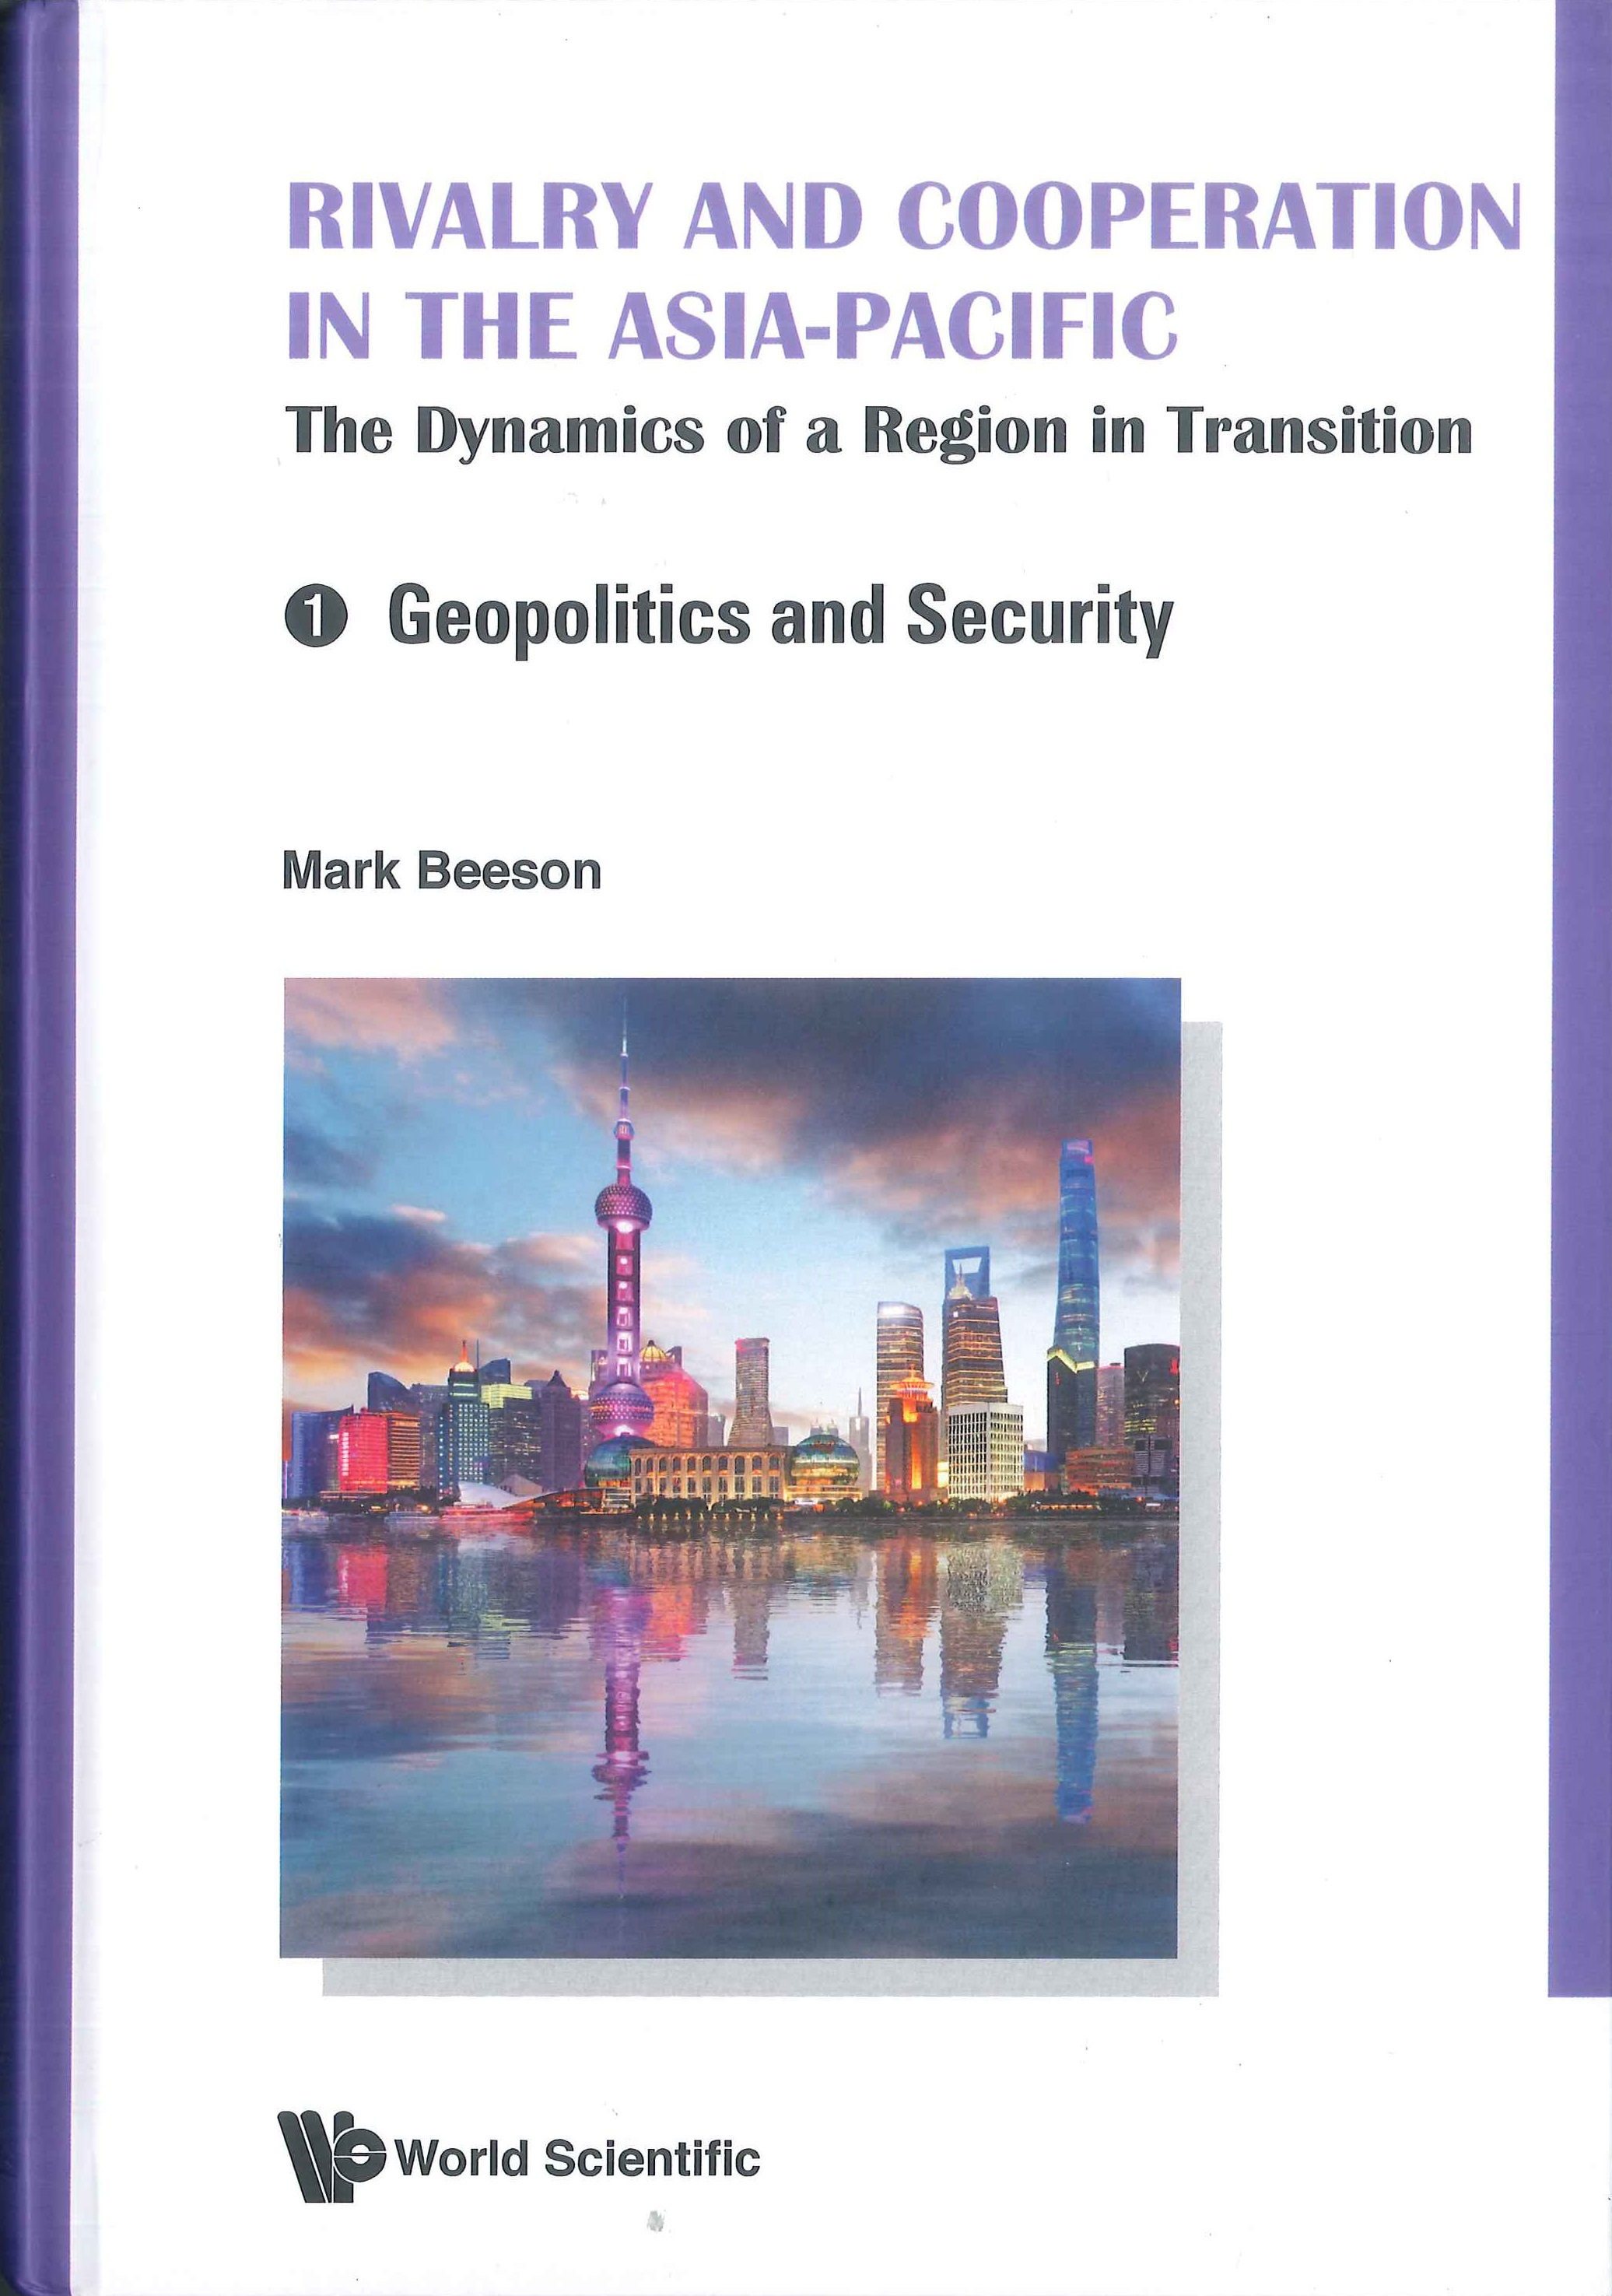 Rivalry and cooperation in the Asia-Pacific:the dynamics of a region in transition